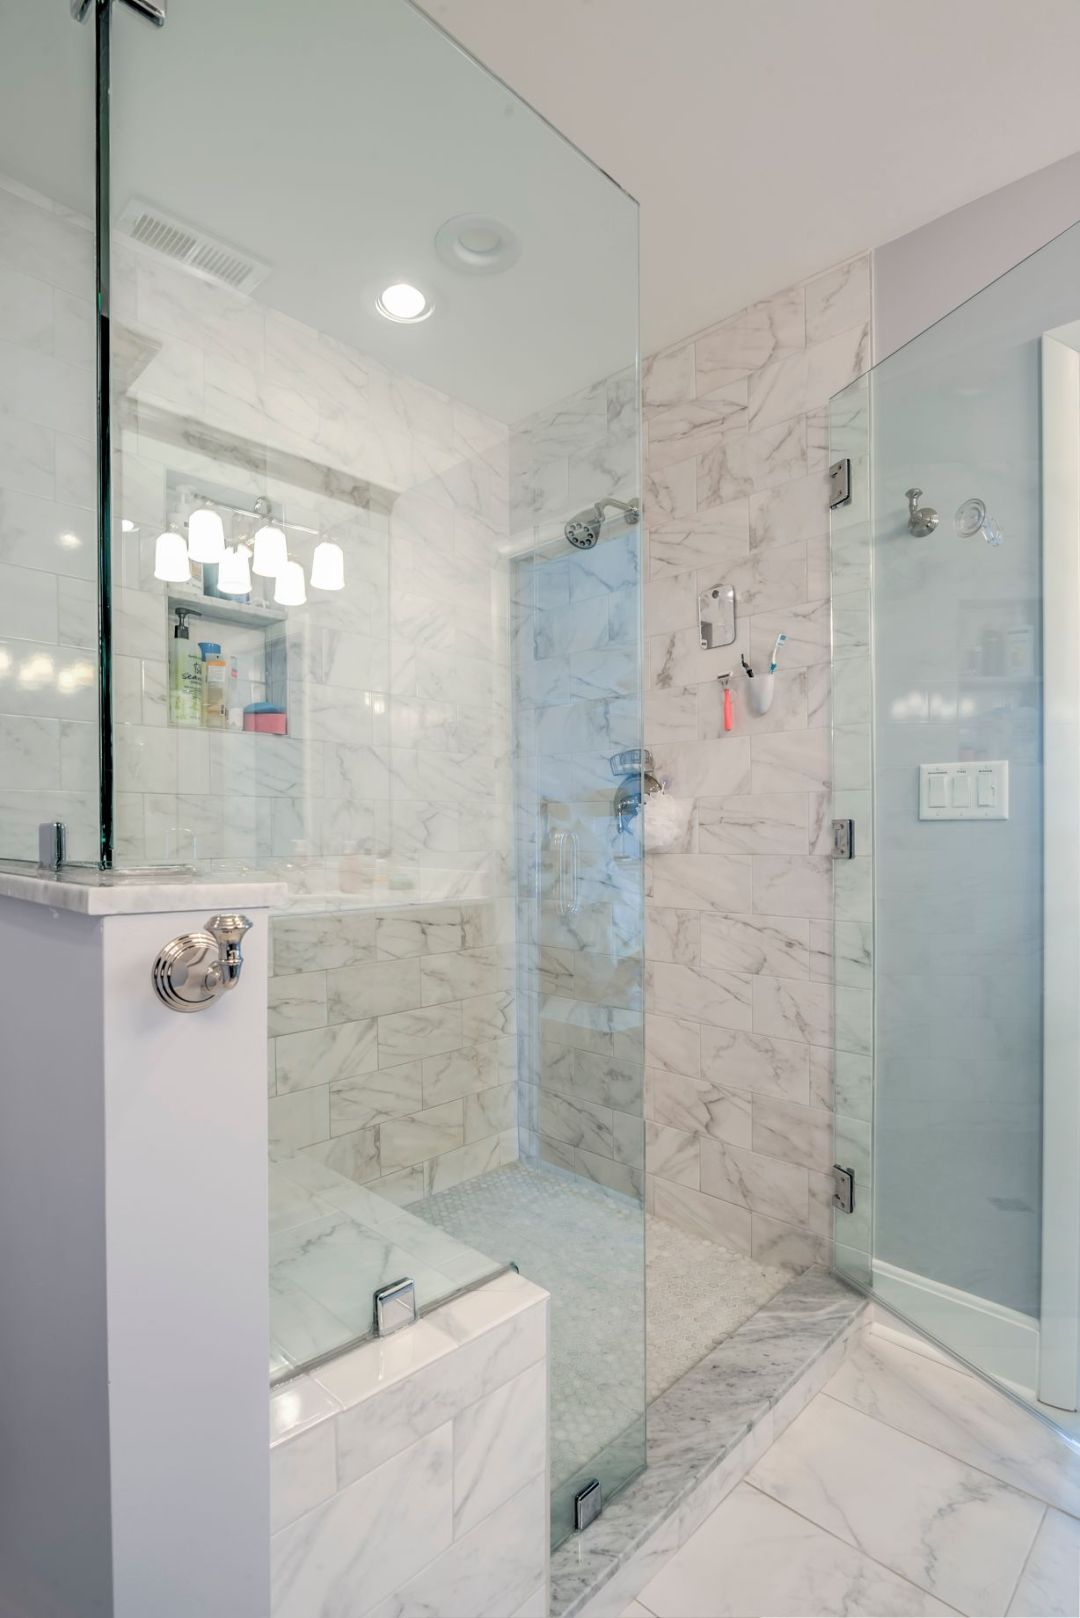 Bathroom Remodel in Kings Grant, Fenwick Island DE with Marble Floor and Shower Wall Tiles, and Frameless Shower Door